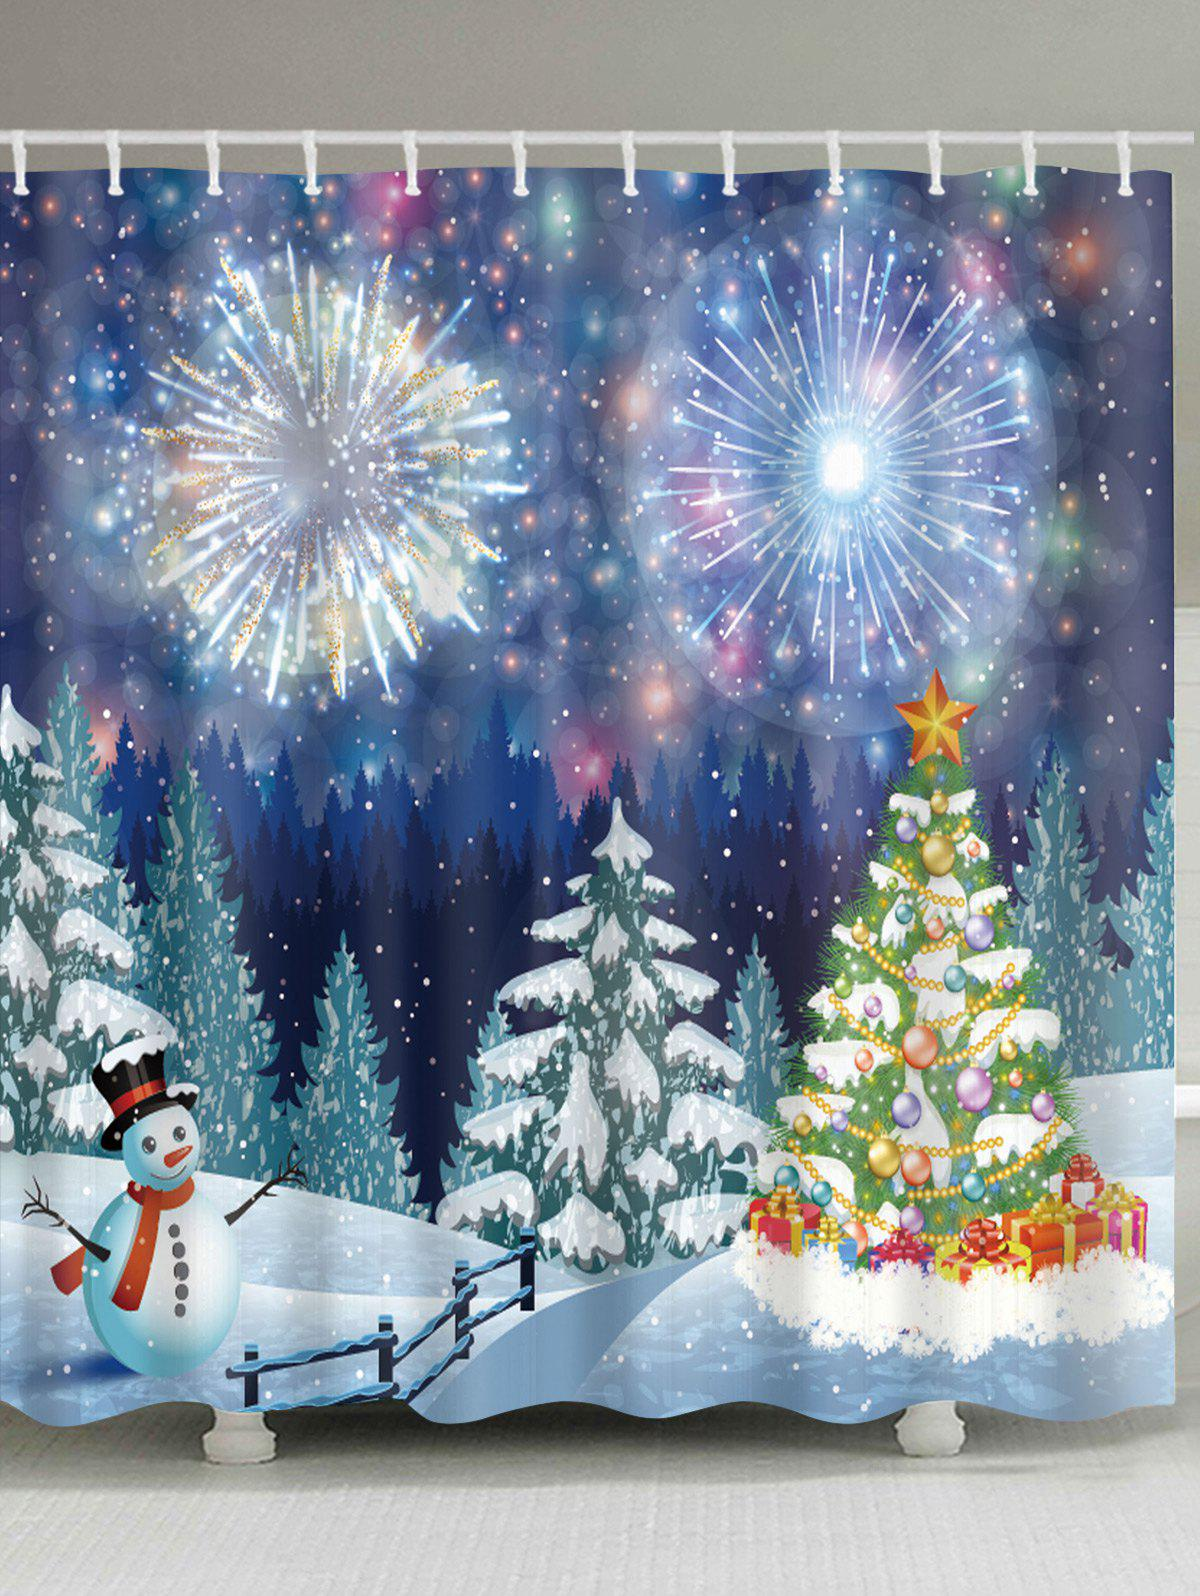 Christmas Forest Firework Print Waterproof Bathroom Shower CurtainHOME<br><br>Size: W71 INCH * L79 INCH; Color: COLORMIX; Products Type: Shower Curtains; Materials: Polyester; Pattern: Christmas Tree,Forest,Snowman; Style: Festival; Number of Hook Holes: W59 inch*L71 inch: 10; W71 inch*L71 inch: 12; W71 inch*L79 inch: 12; Package Contents: 1 x Shower Curtain 1 x Hooks (Set);